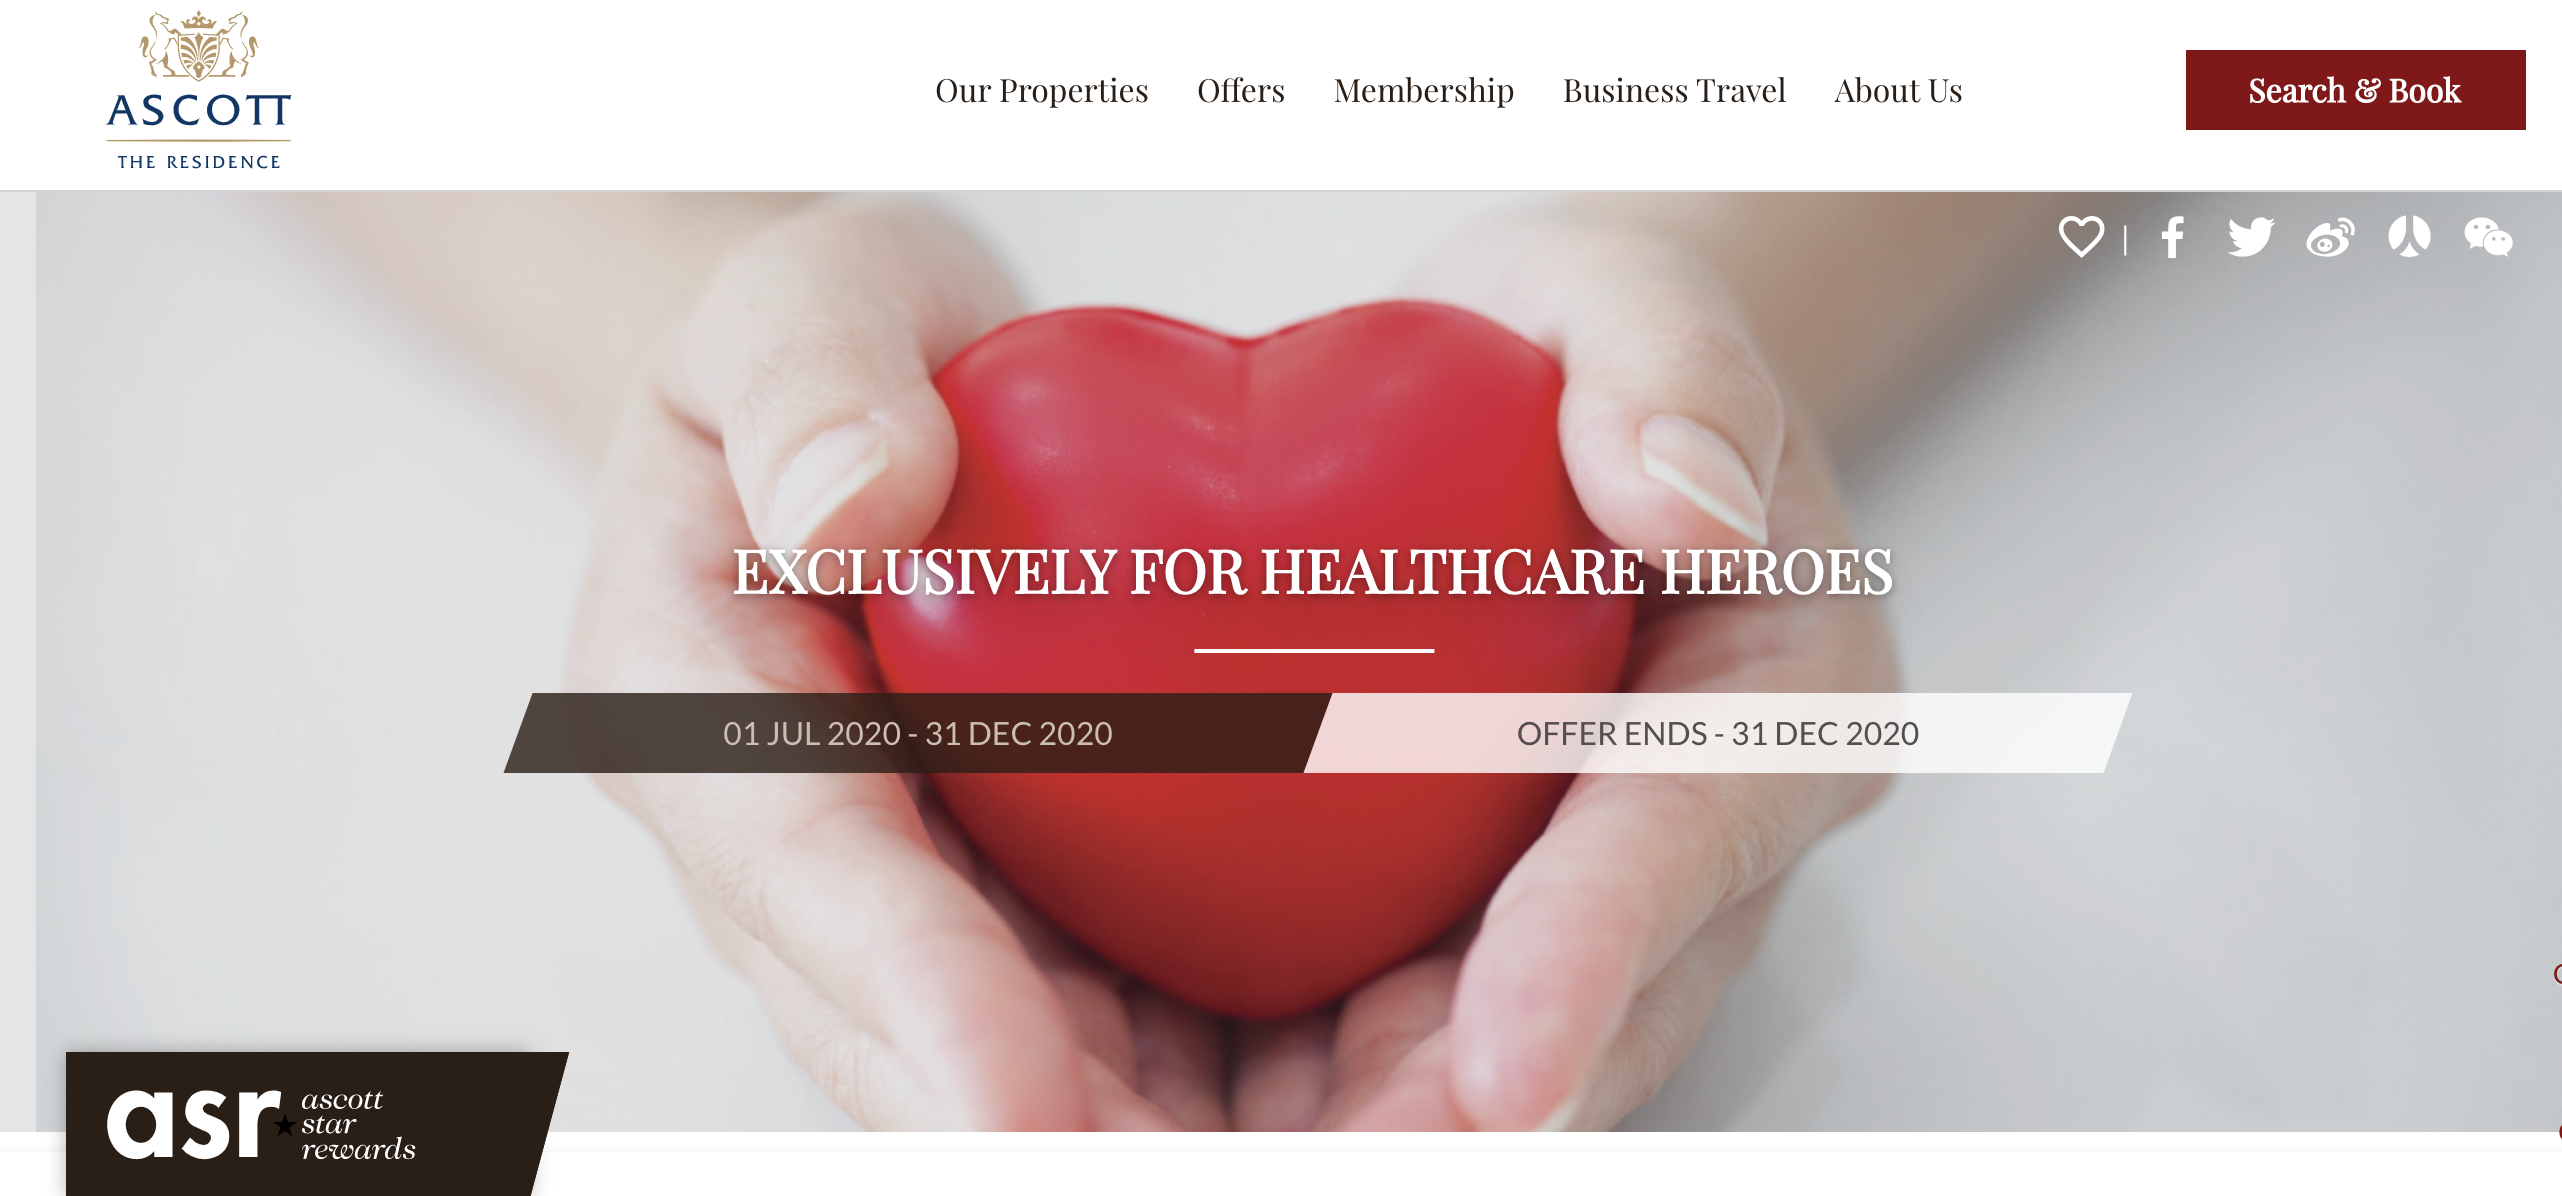 the ascott for healthcare heroes promotion campaign